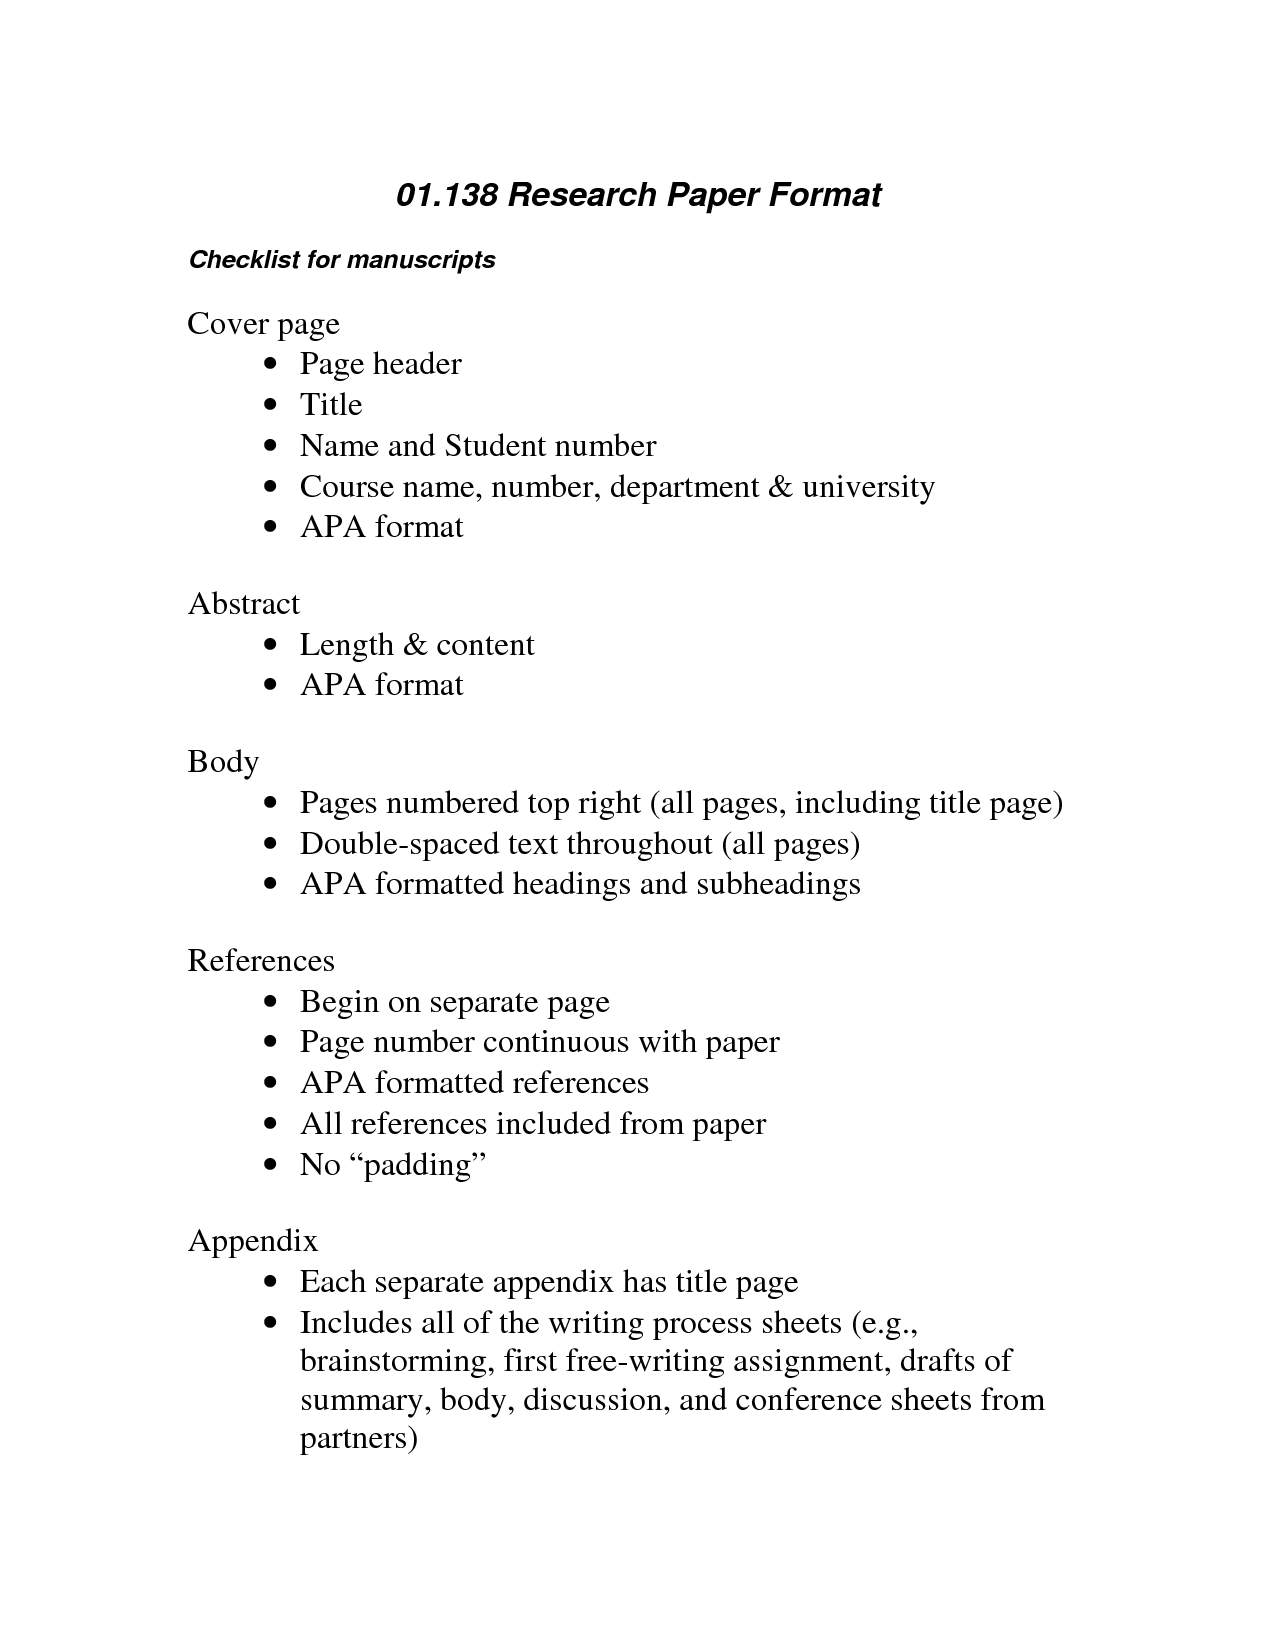 cover page format research paper sample cse paper mla format sample cover page for research paper sample cse paper mla format sample cover page for research paper